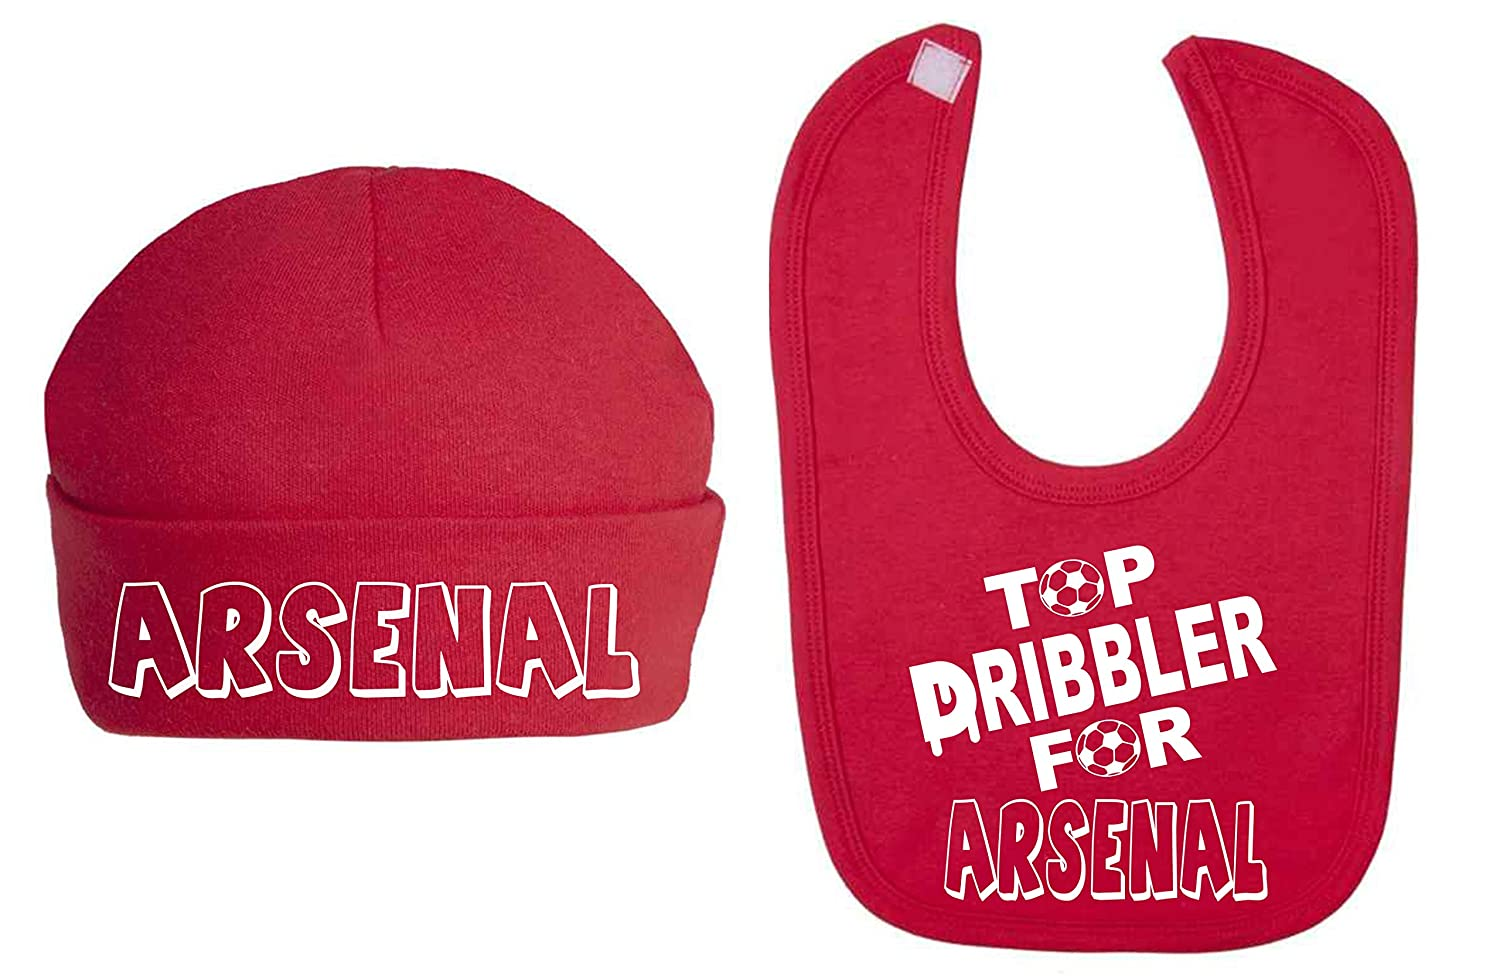 82c514dc4f8 Top Dribbler for Arsenal Hat and Bib Set Baby Clothing Sets Baby Football  Sets Baby Shower (6-12 Months)  Amazon.co.uk  Baby